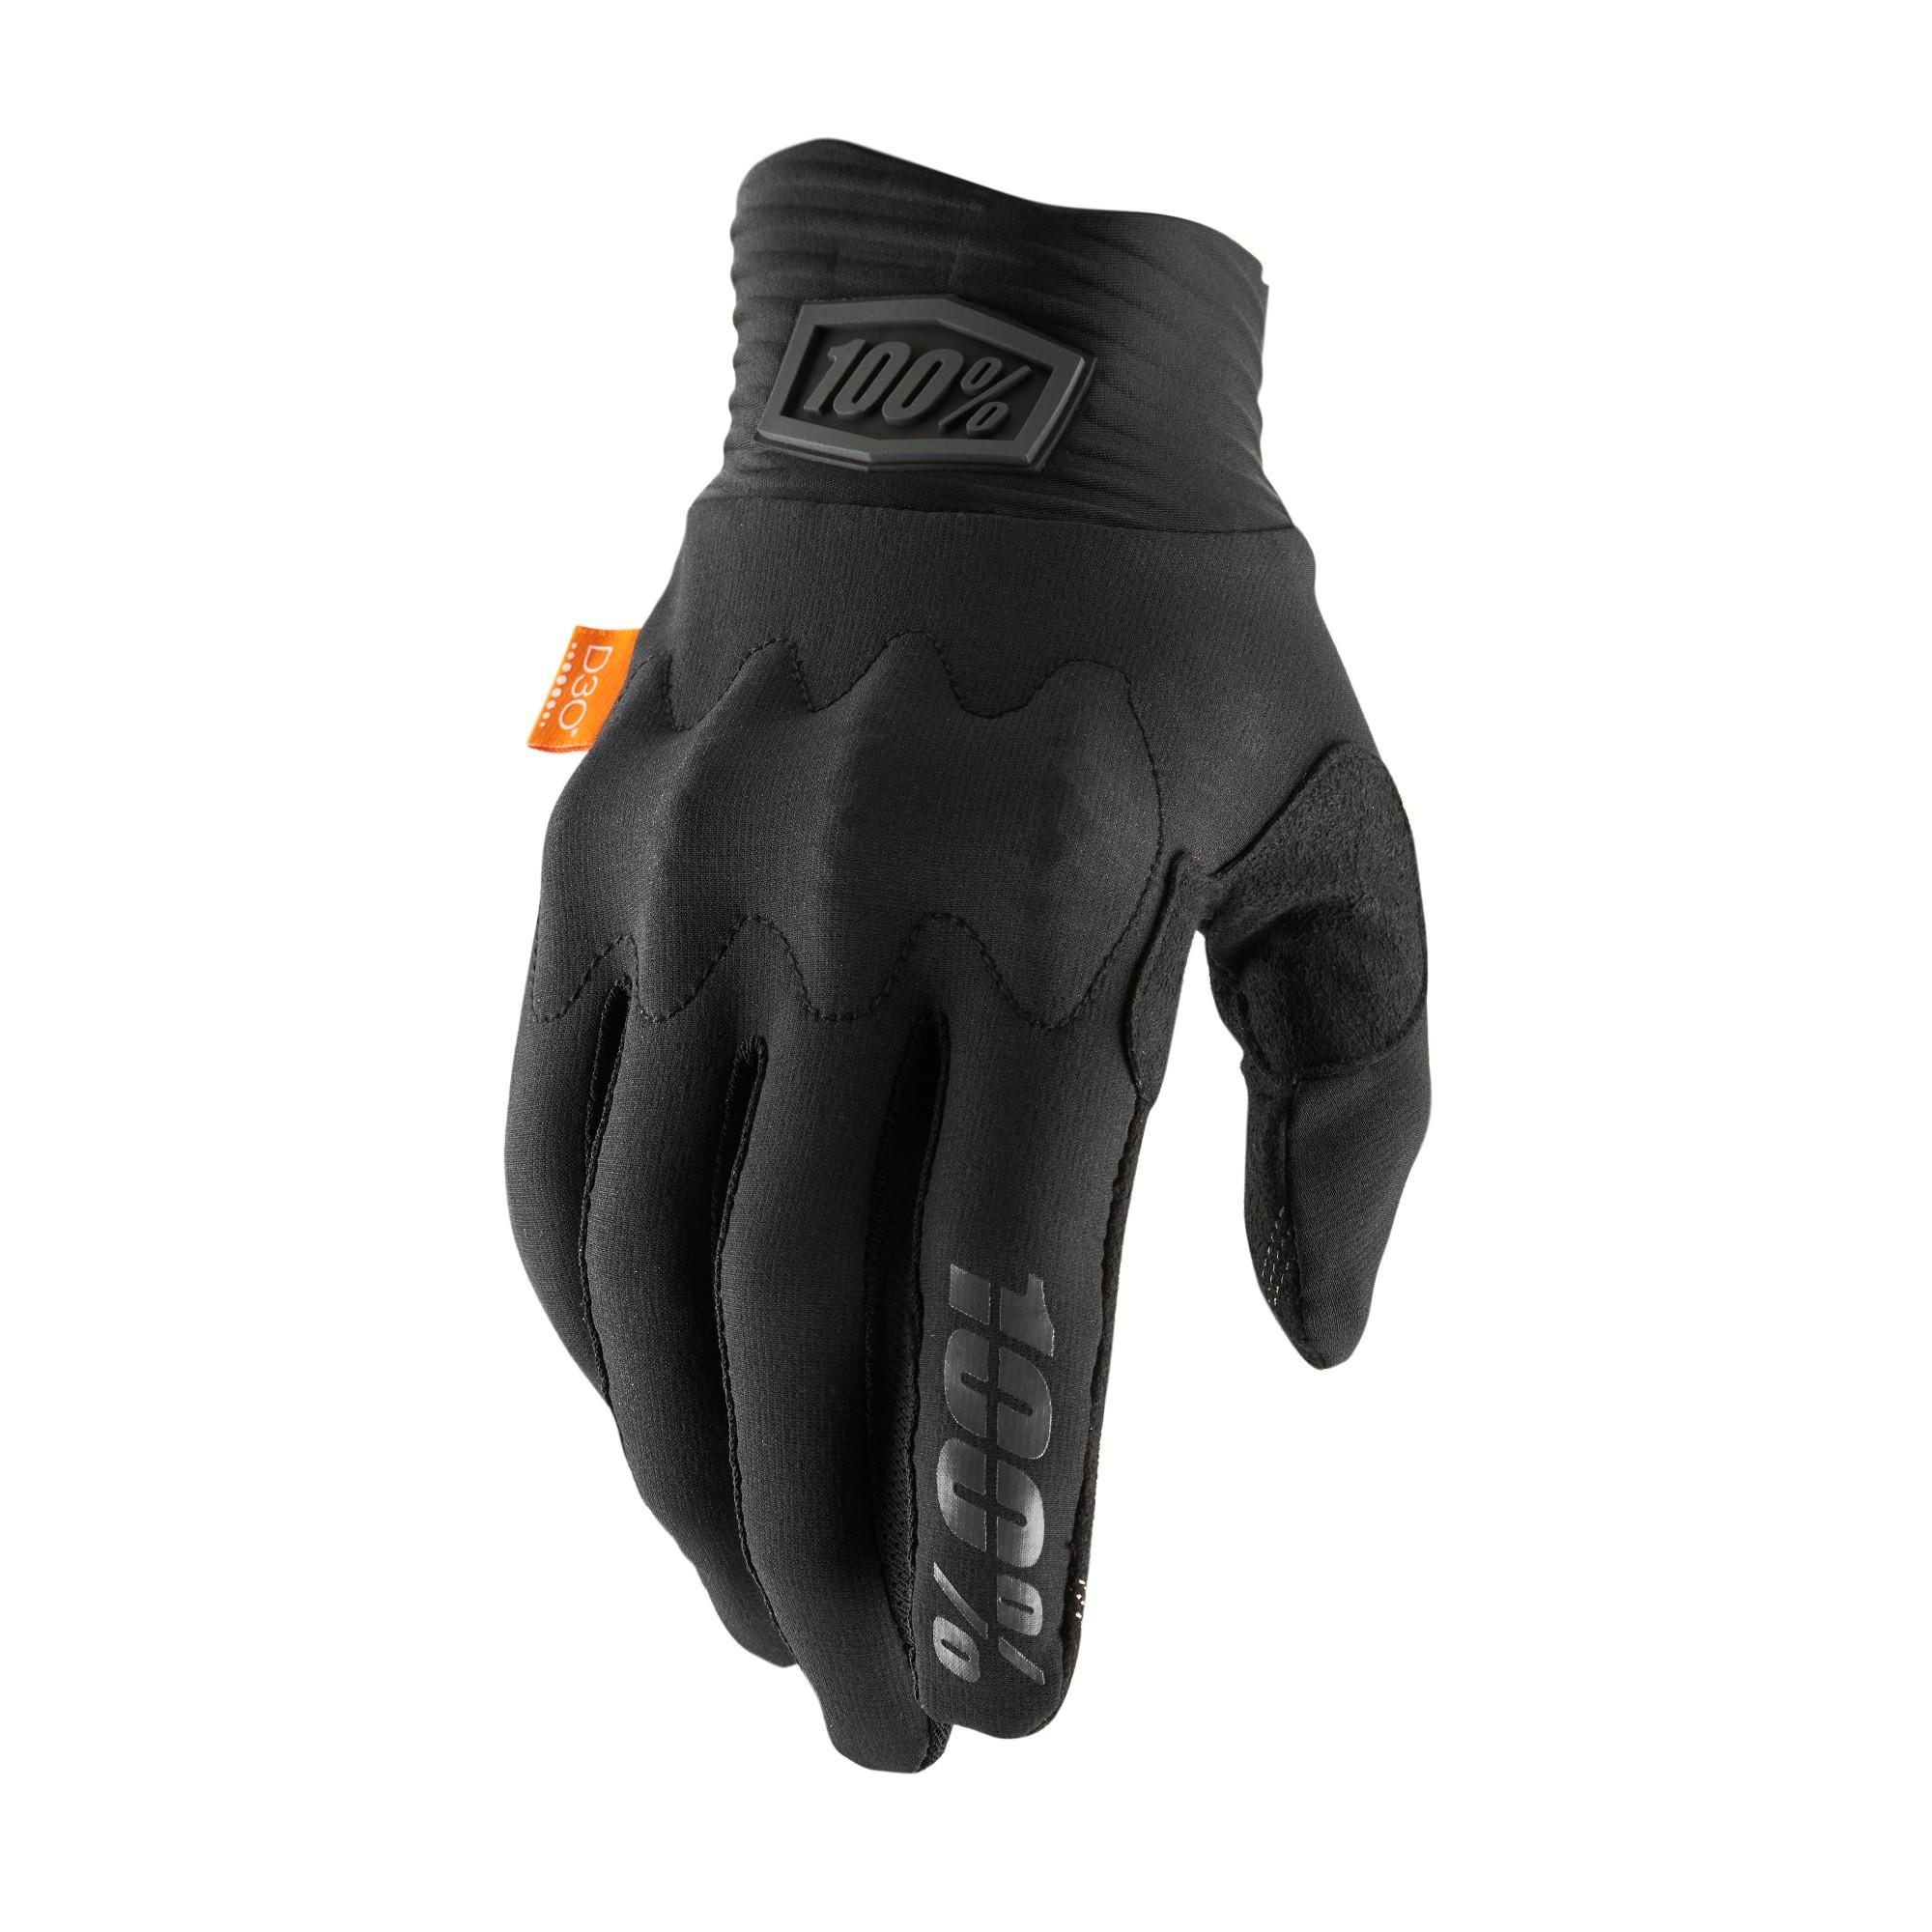 COGNITO 100% Glove Black/Charcoal